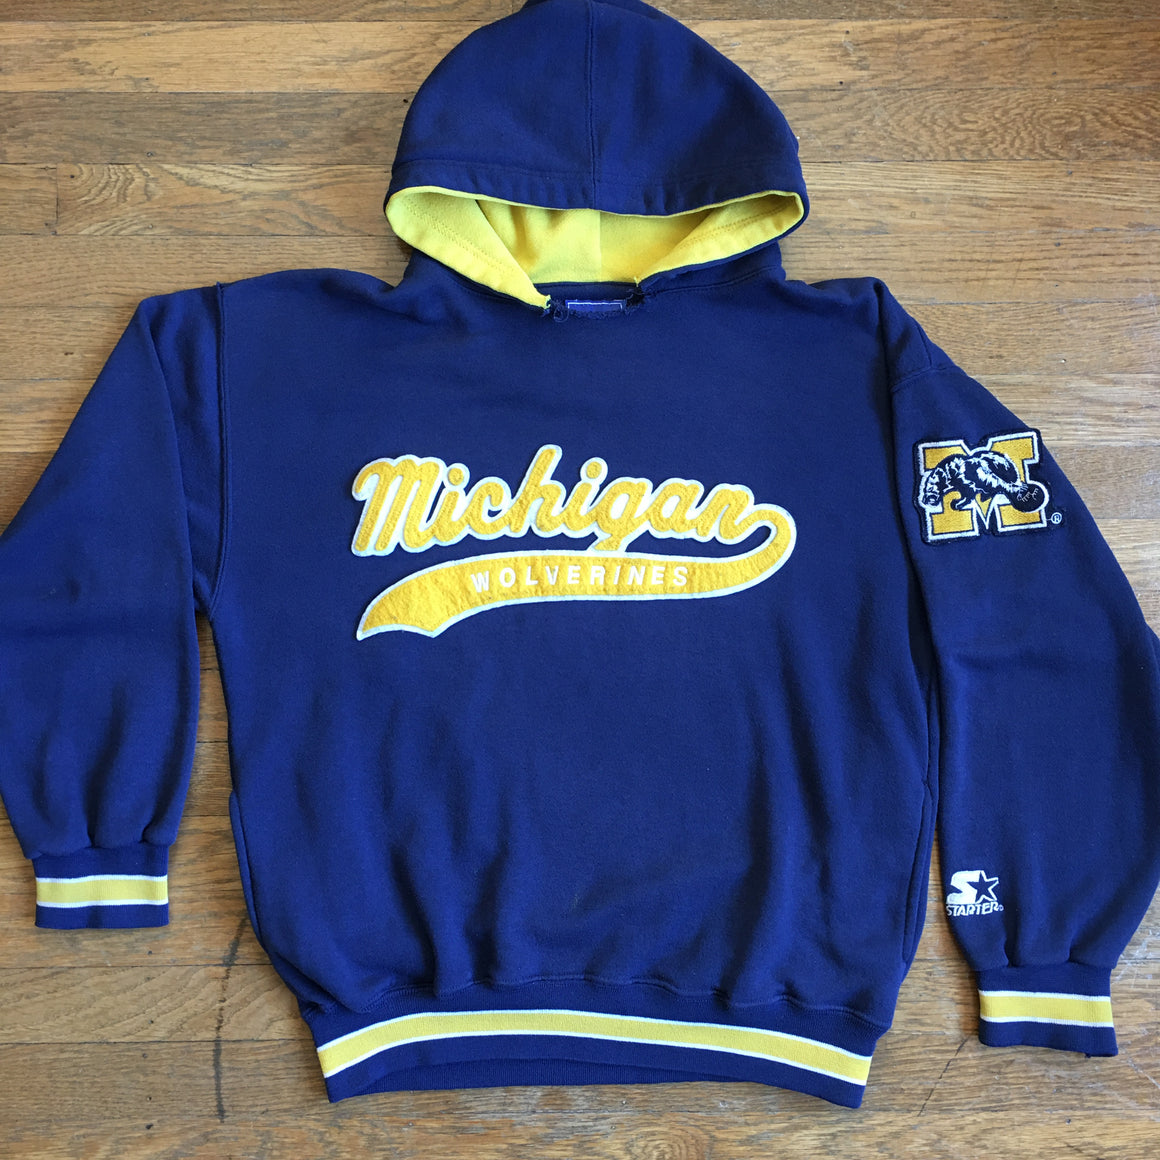 Michigan Wolverines Starter sweatshirt - S